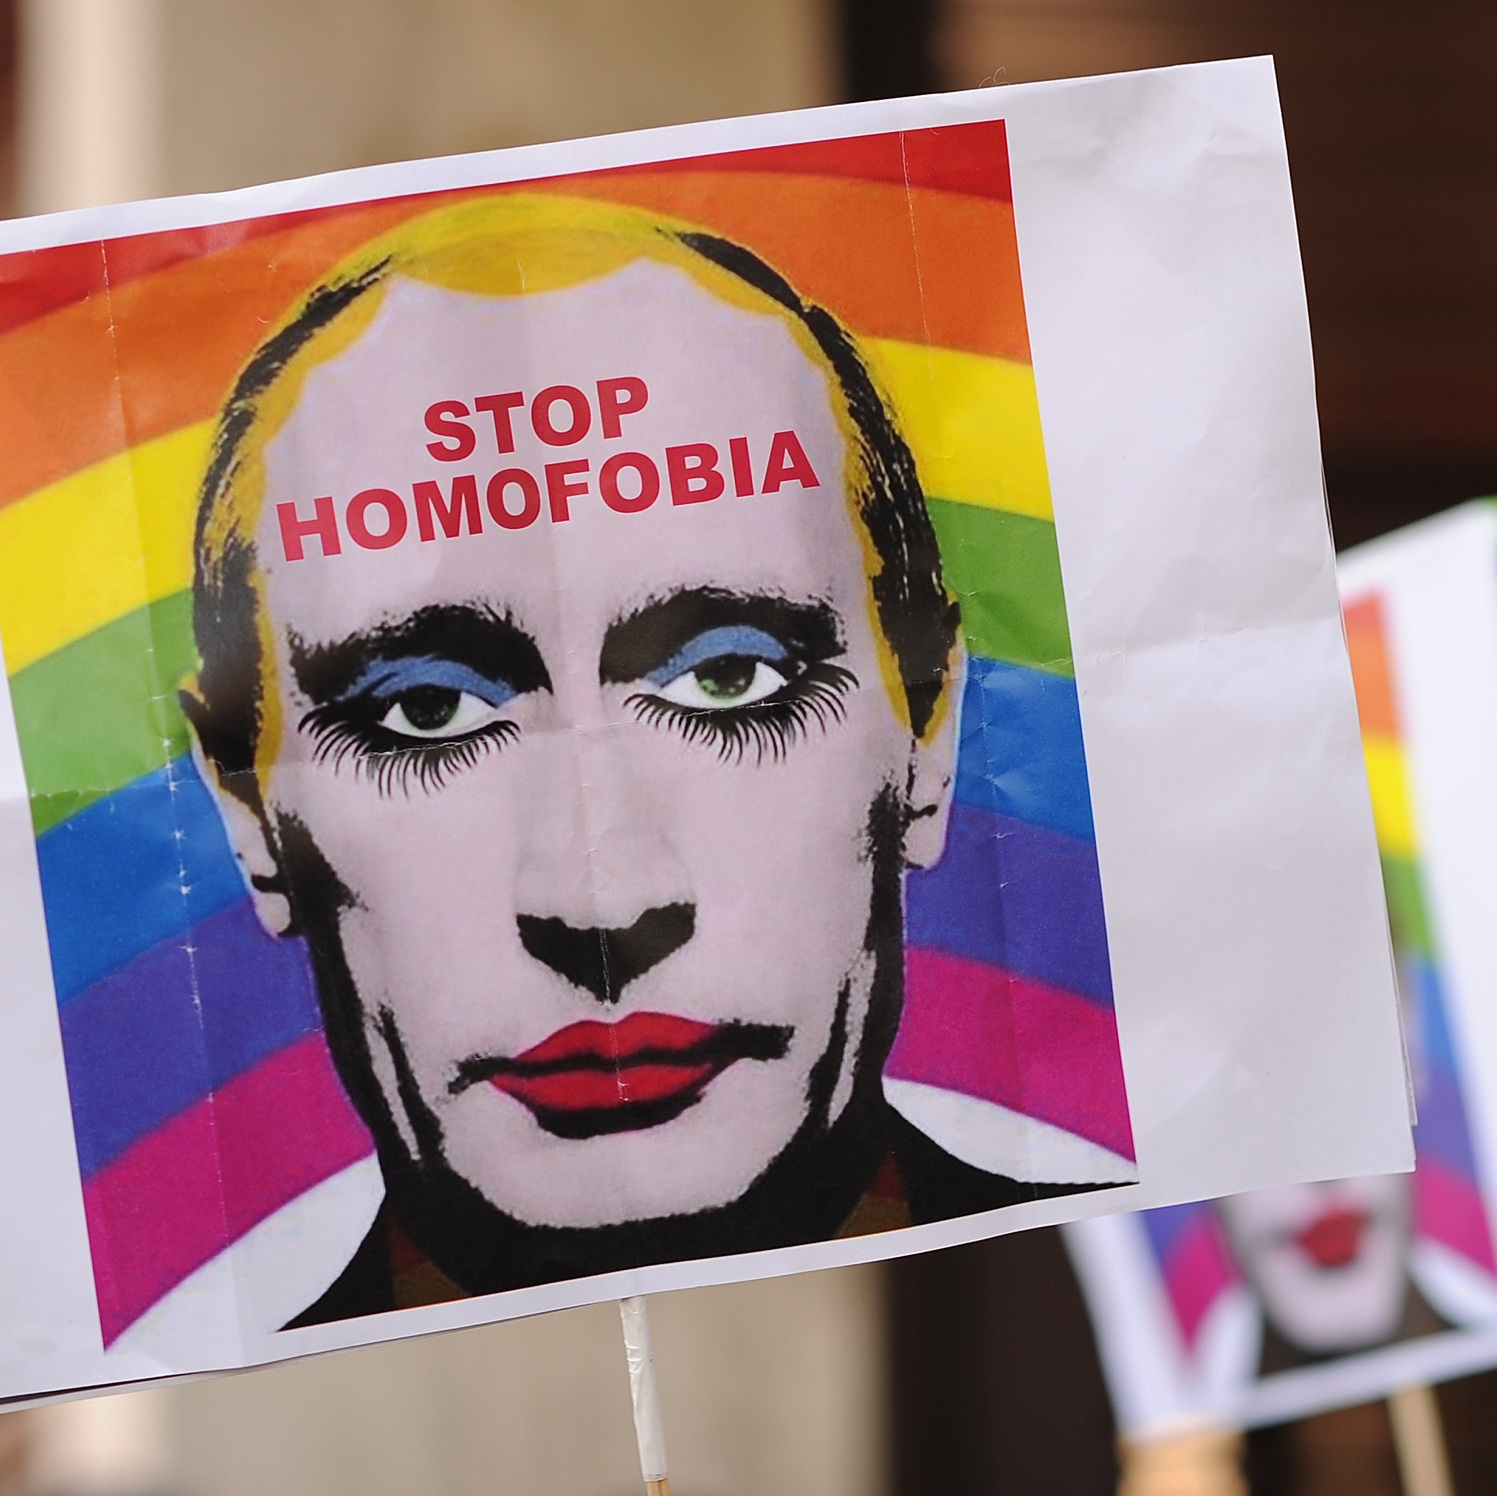 A protester holds up an image representing Russian President Vladimir Putin wearing lipstick during a protest against Russian anti-gay laws opposite the Russian Embassy in Madrid on Aug. 23.